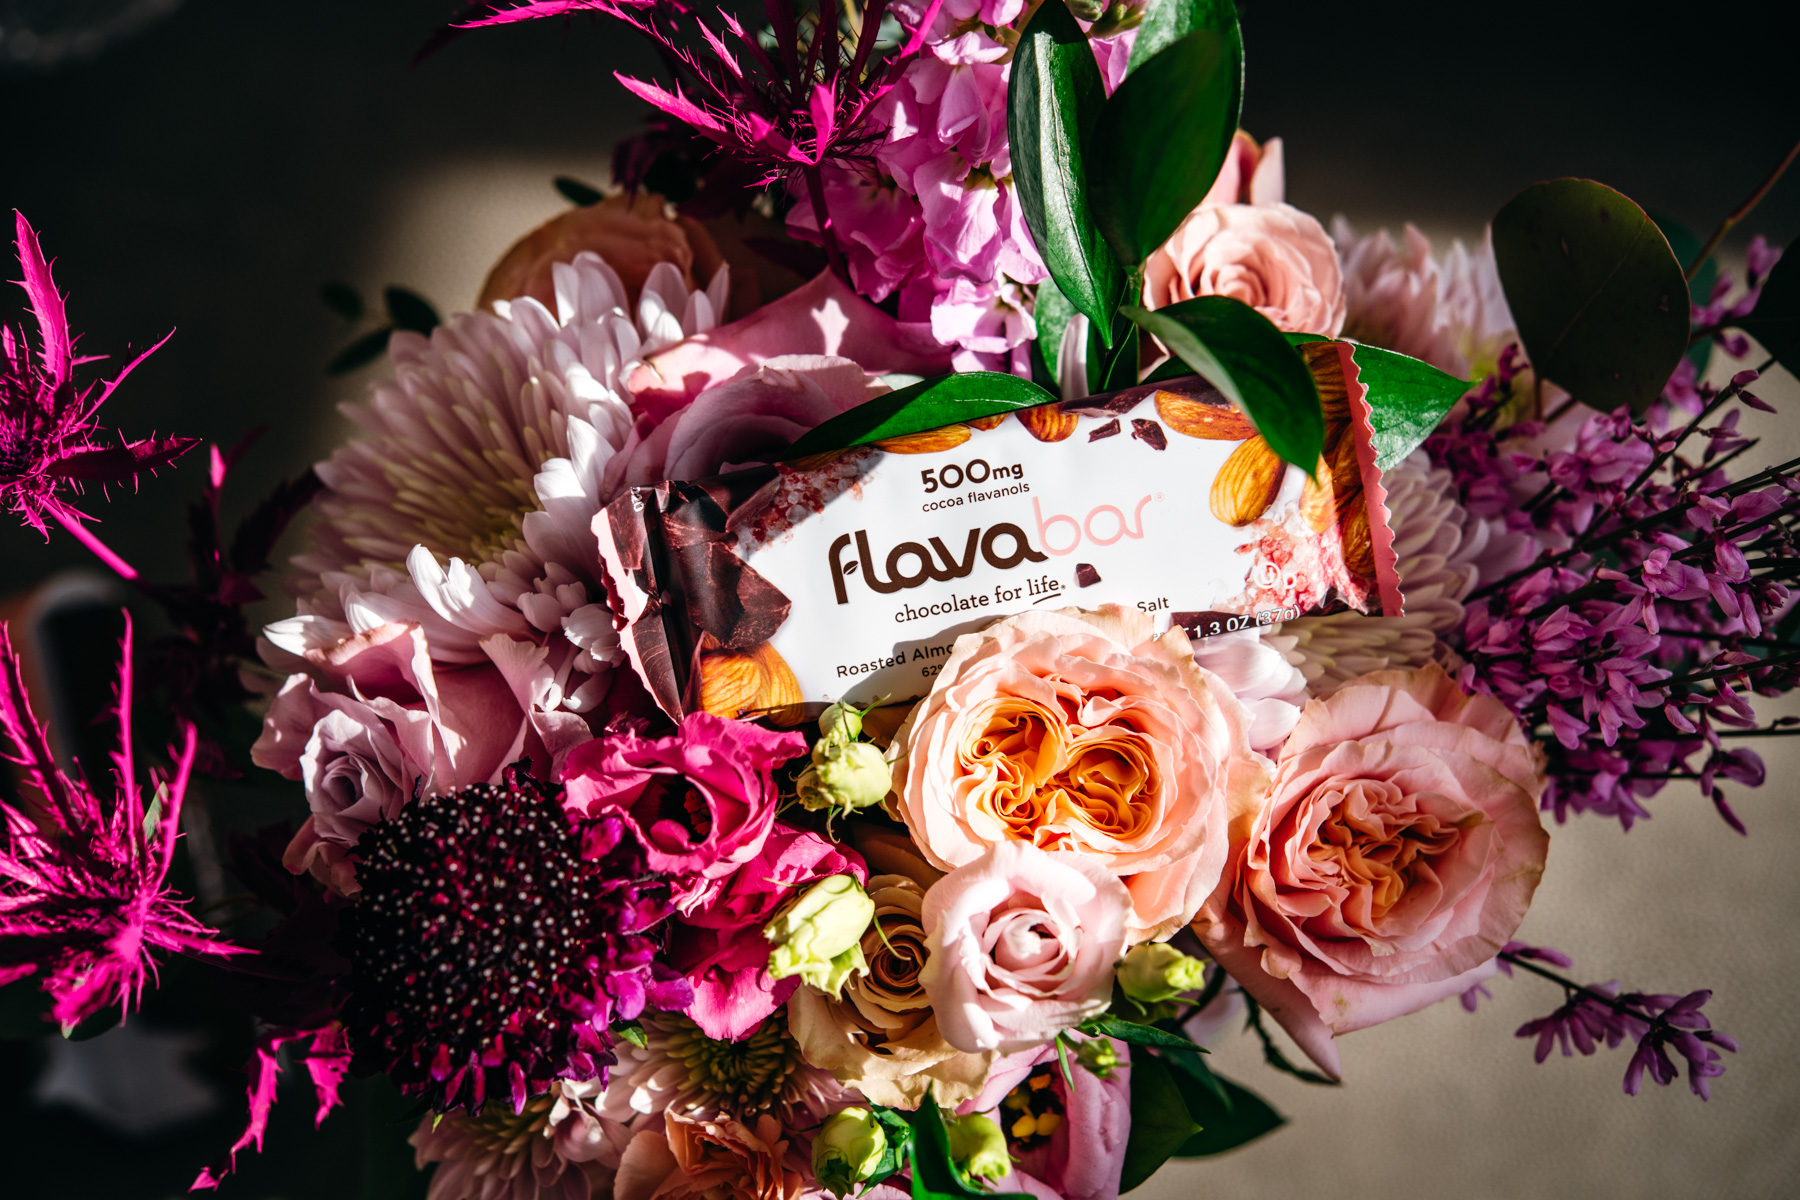 Chocolate almond FlavaBar in a bouquet of pink flowers.